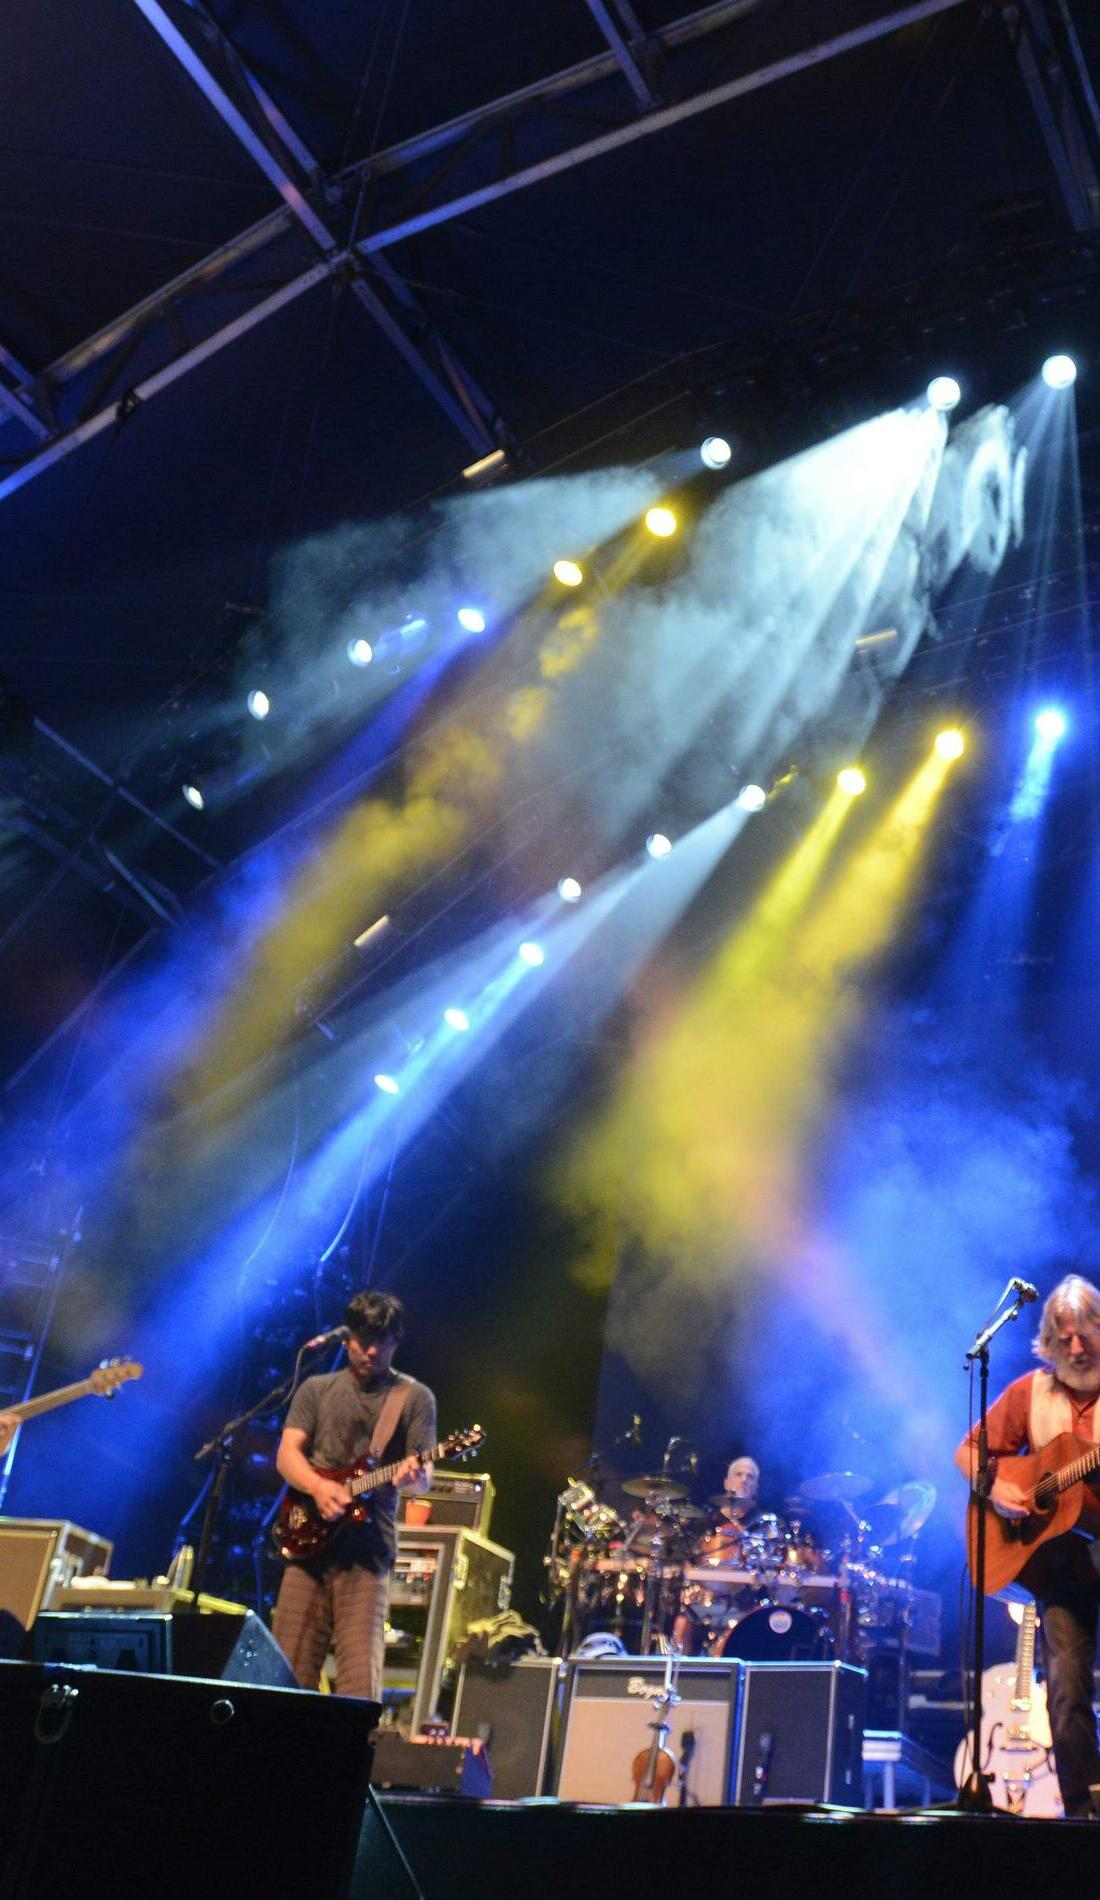 A The String Cheese Incident live event